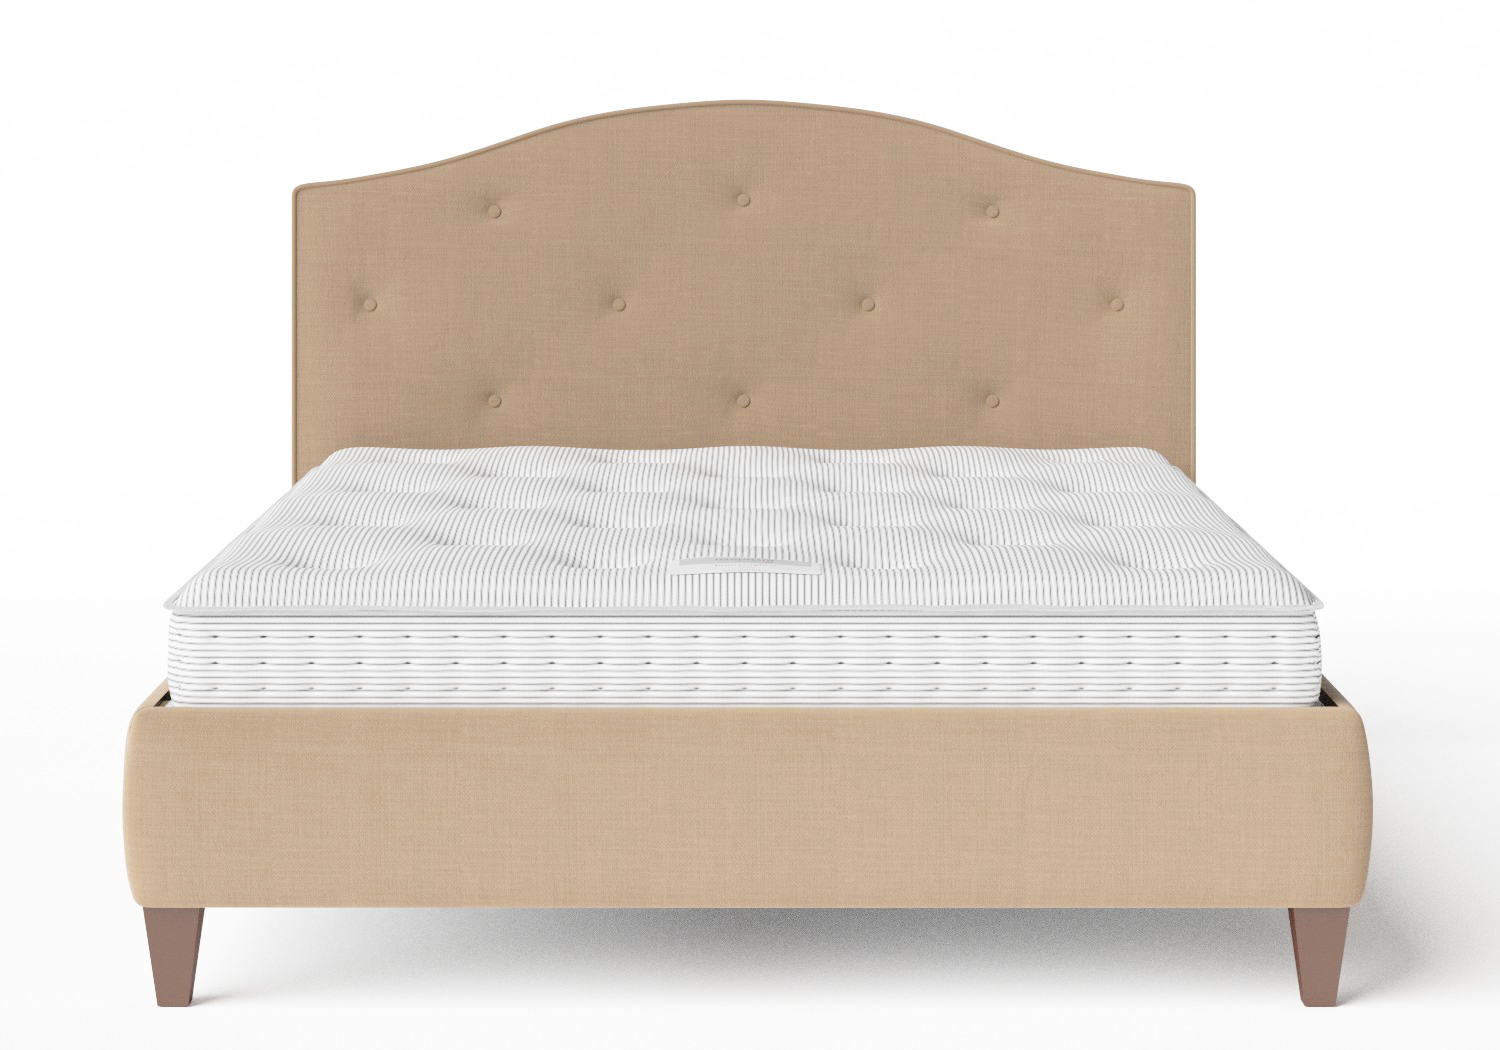 Daniella Upholstered bed in Straw fabric with buttoning shown with Juno 1 mattress